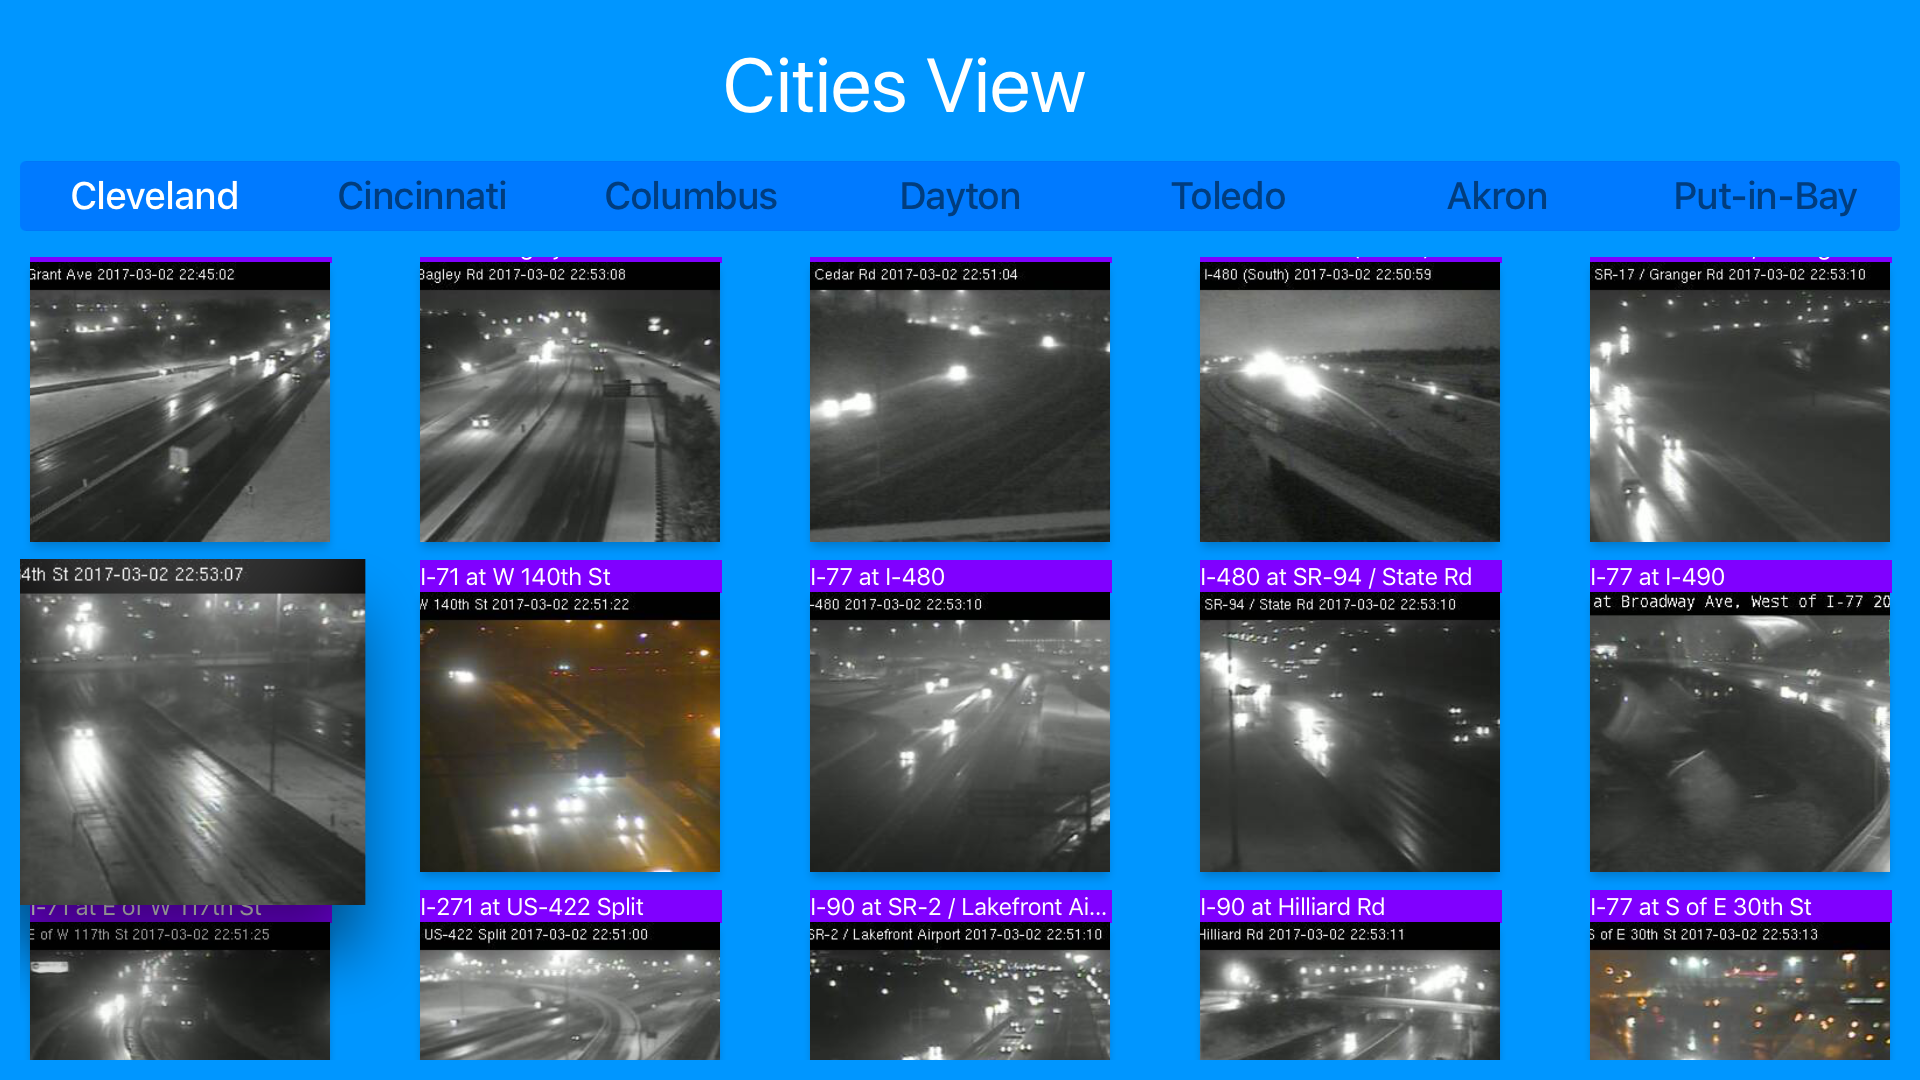 Ohio Cincinnati Cleveland Traffic Cameras - Travel & Transit